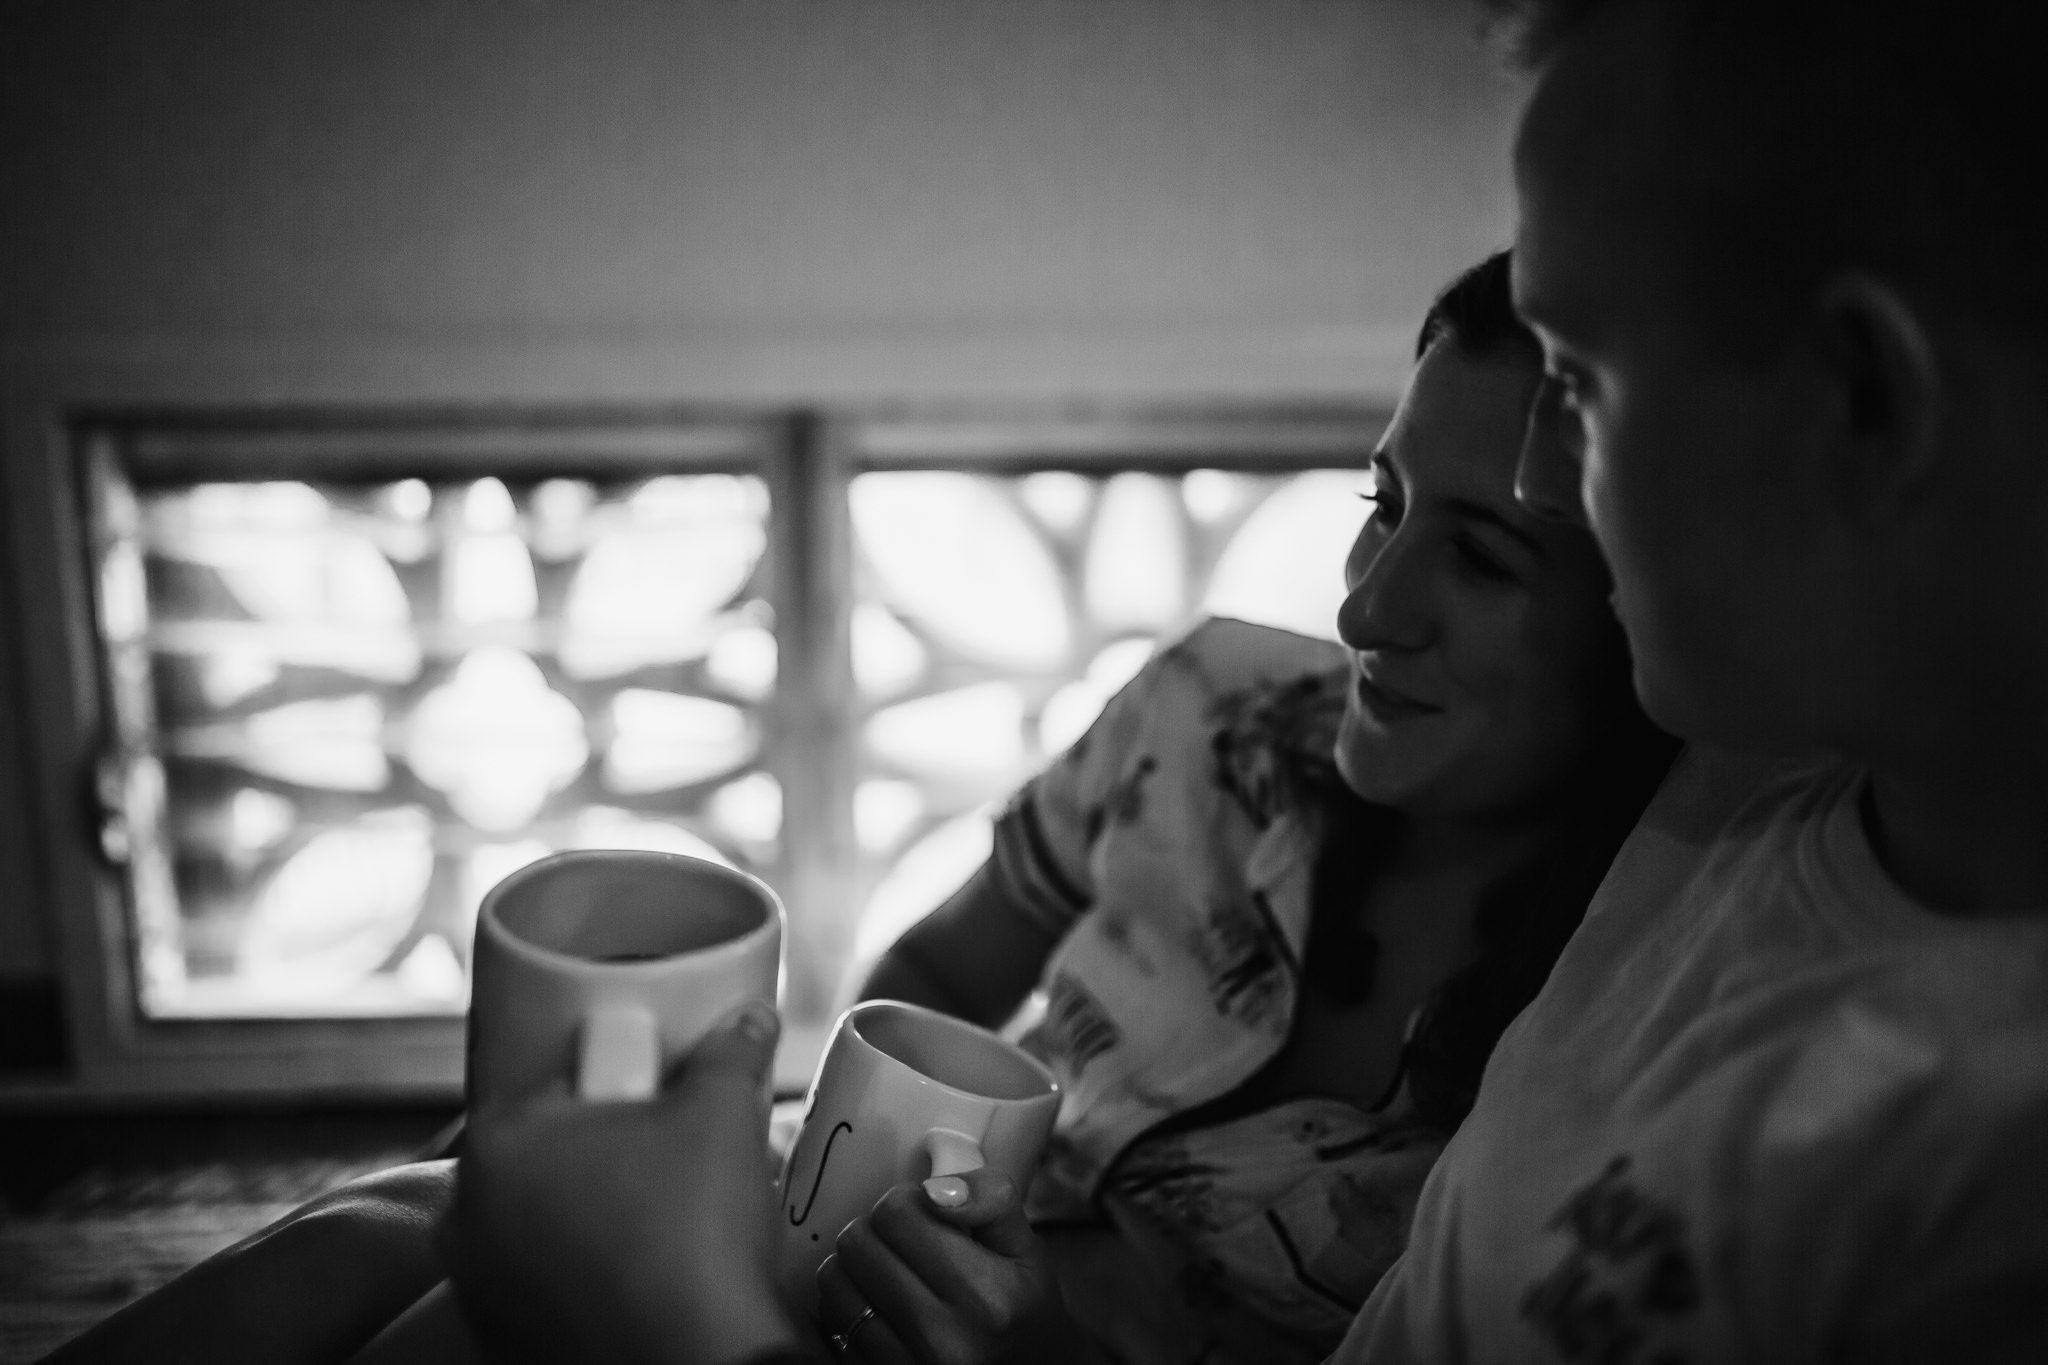 in-home-session-newlyweds-cassie-cook-photography-rosemary-beach-4.jpg